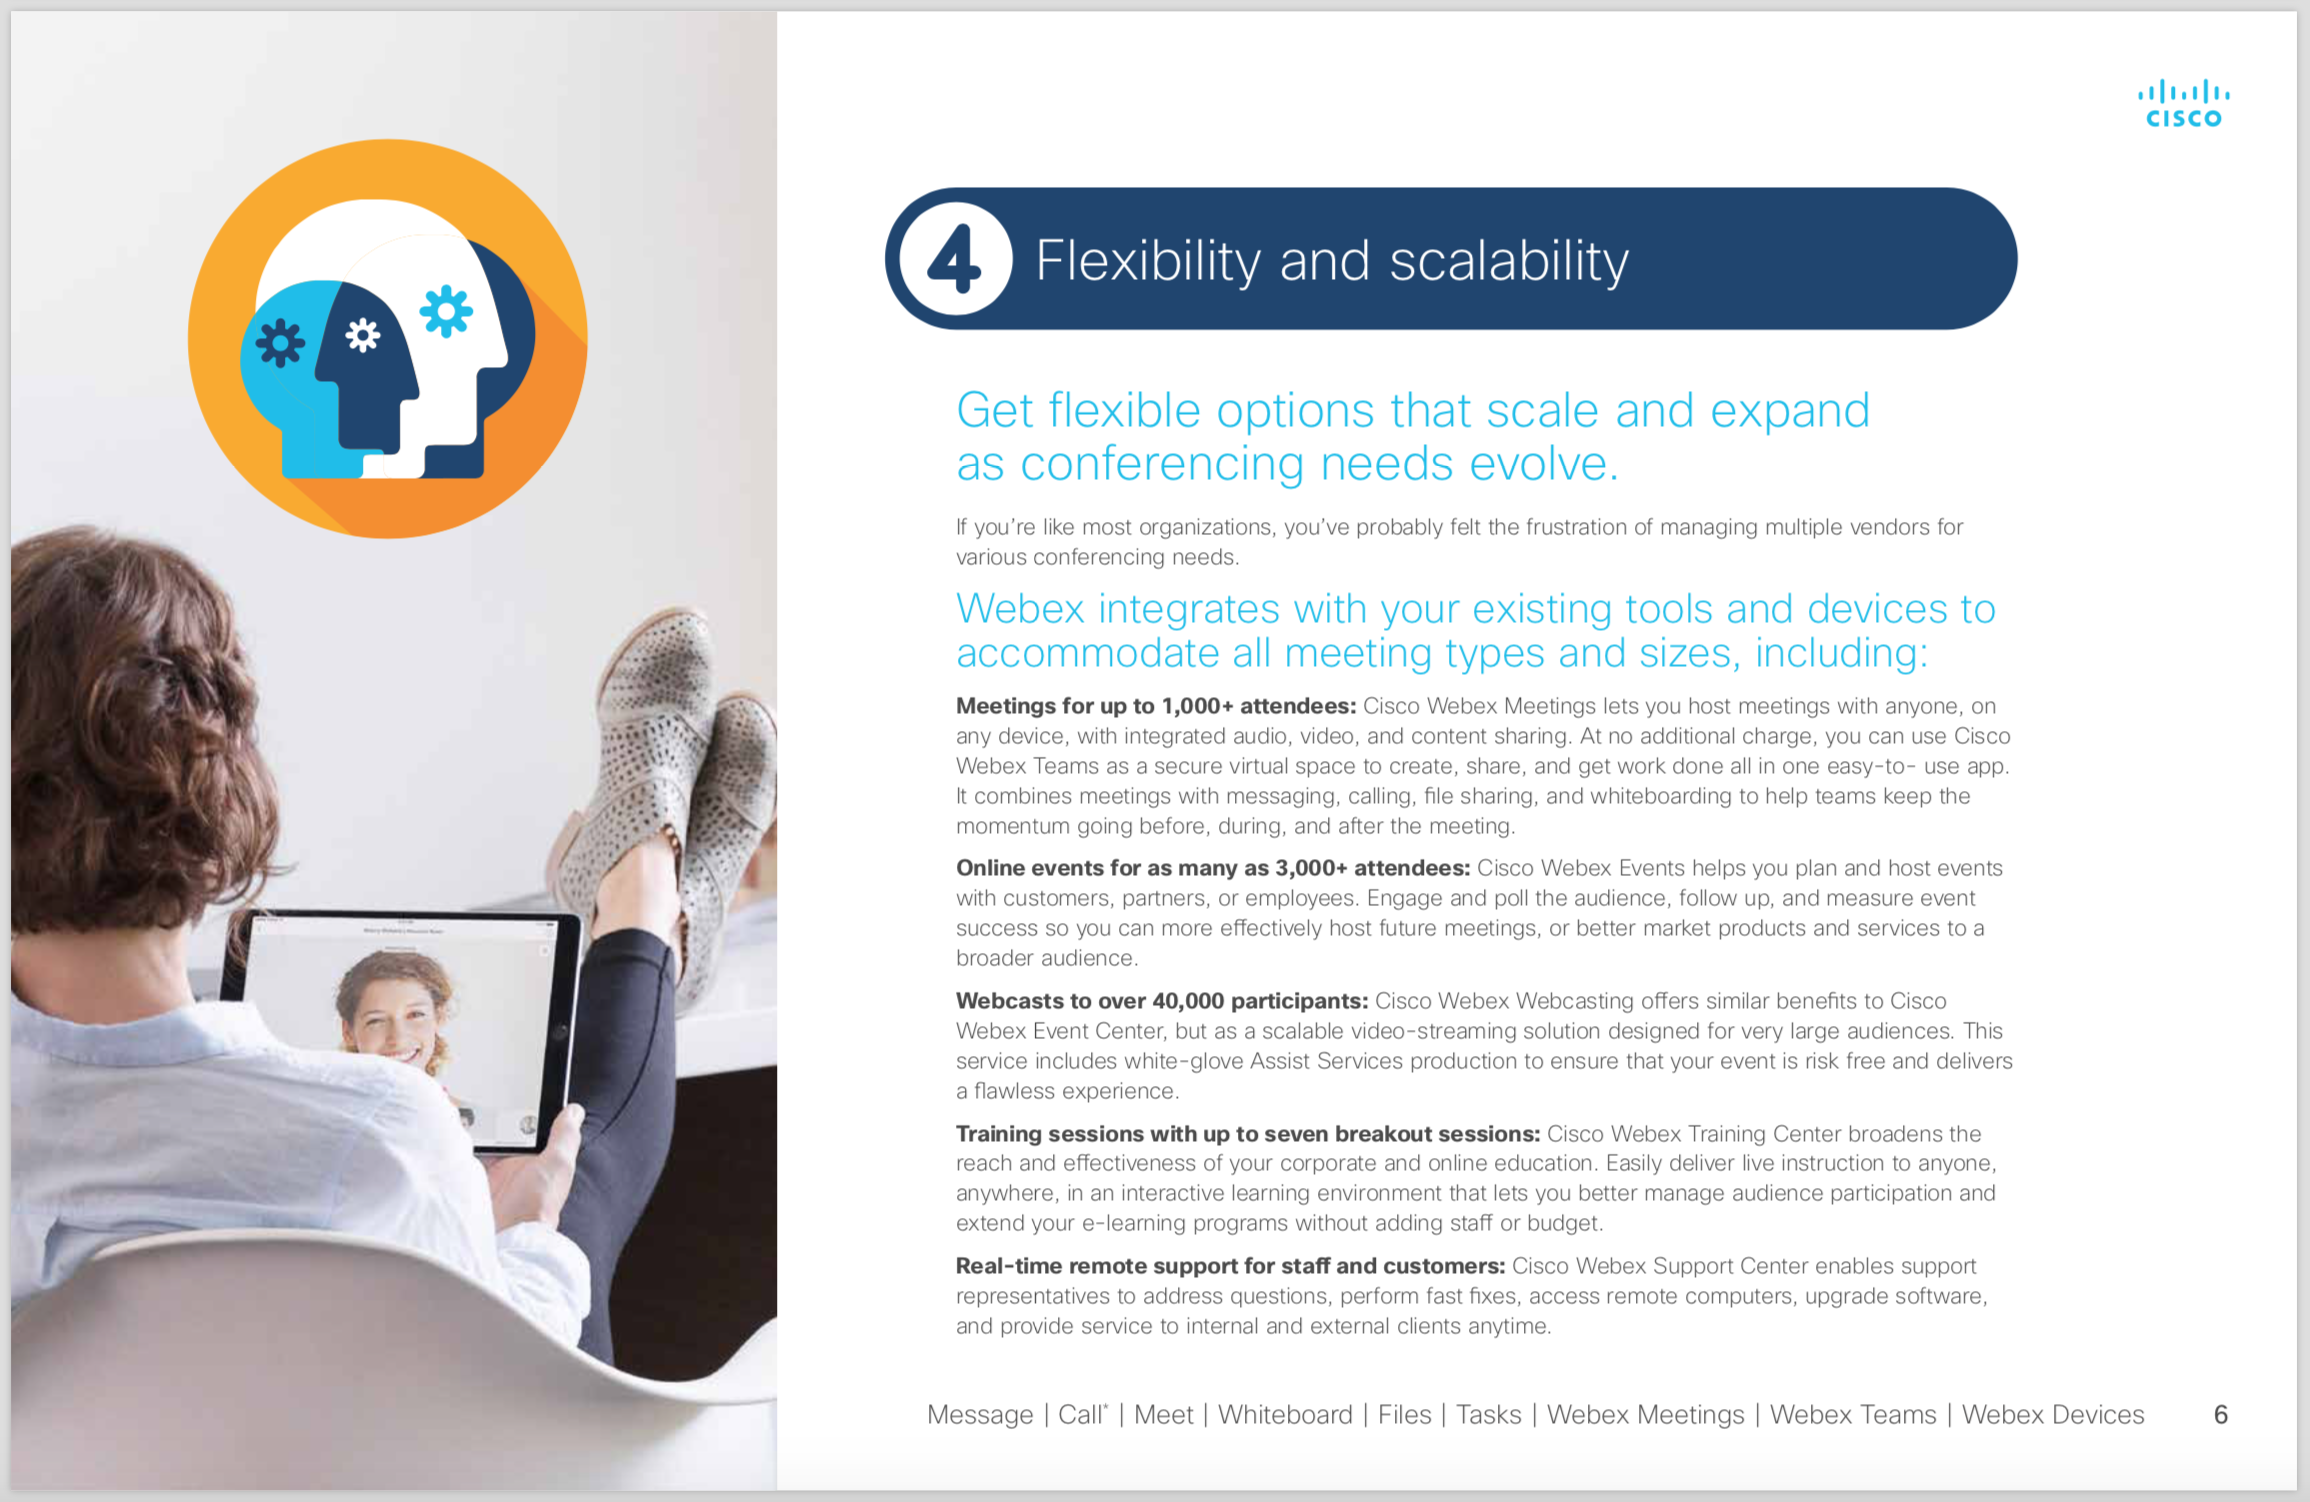 Cisco Webex 5 Reasons 6